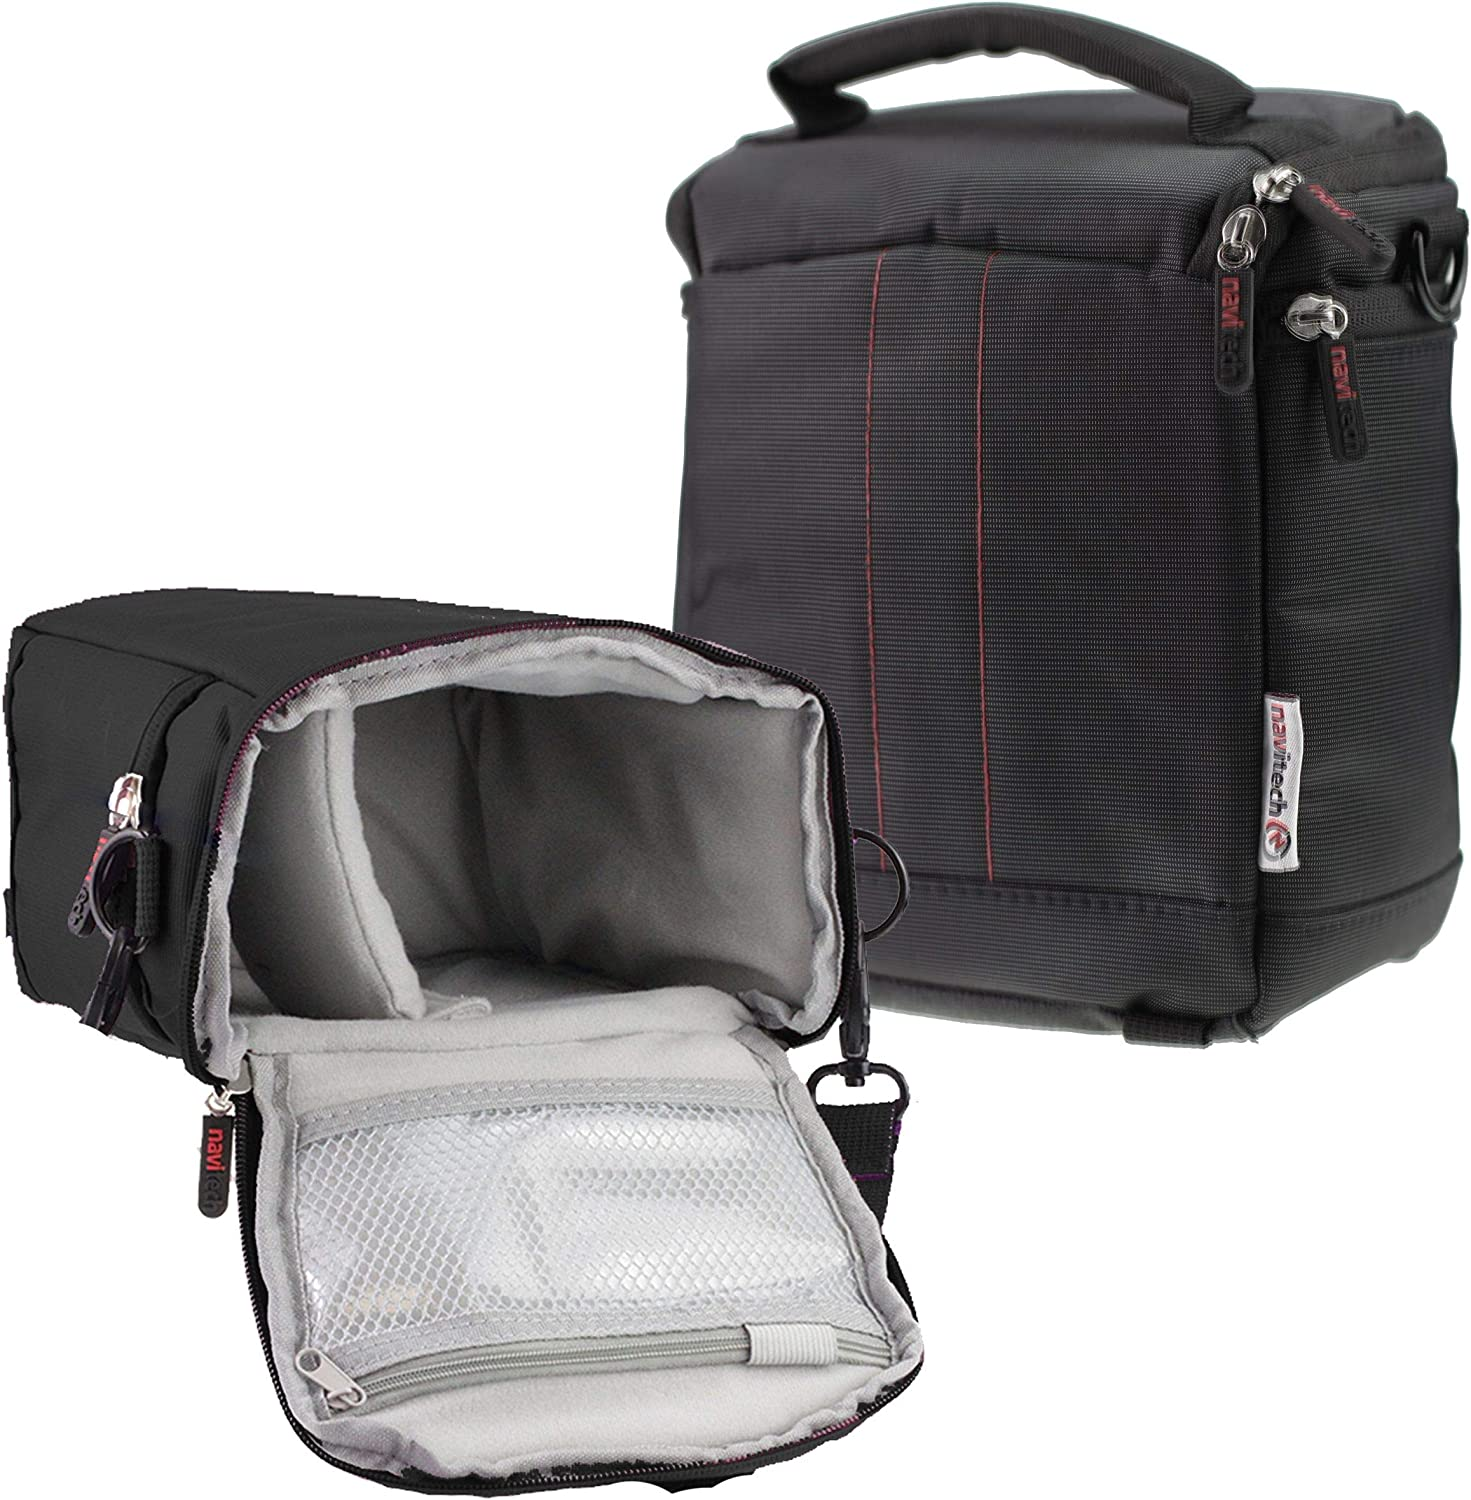 Navitech Black DSLR SLR Camera Carrying Case and Travel Bag Compatible with The Nikon D3S